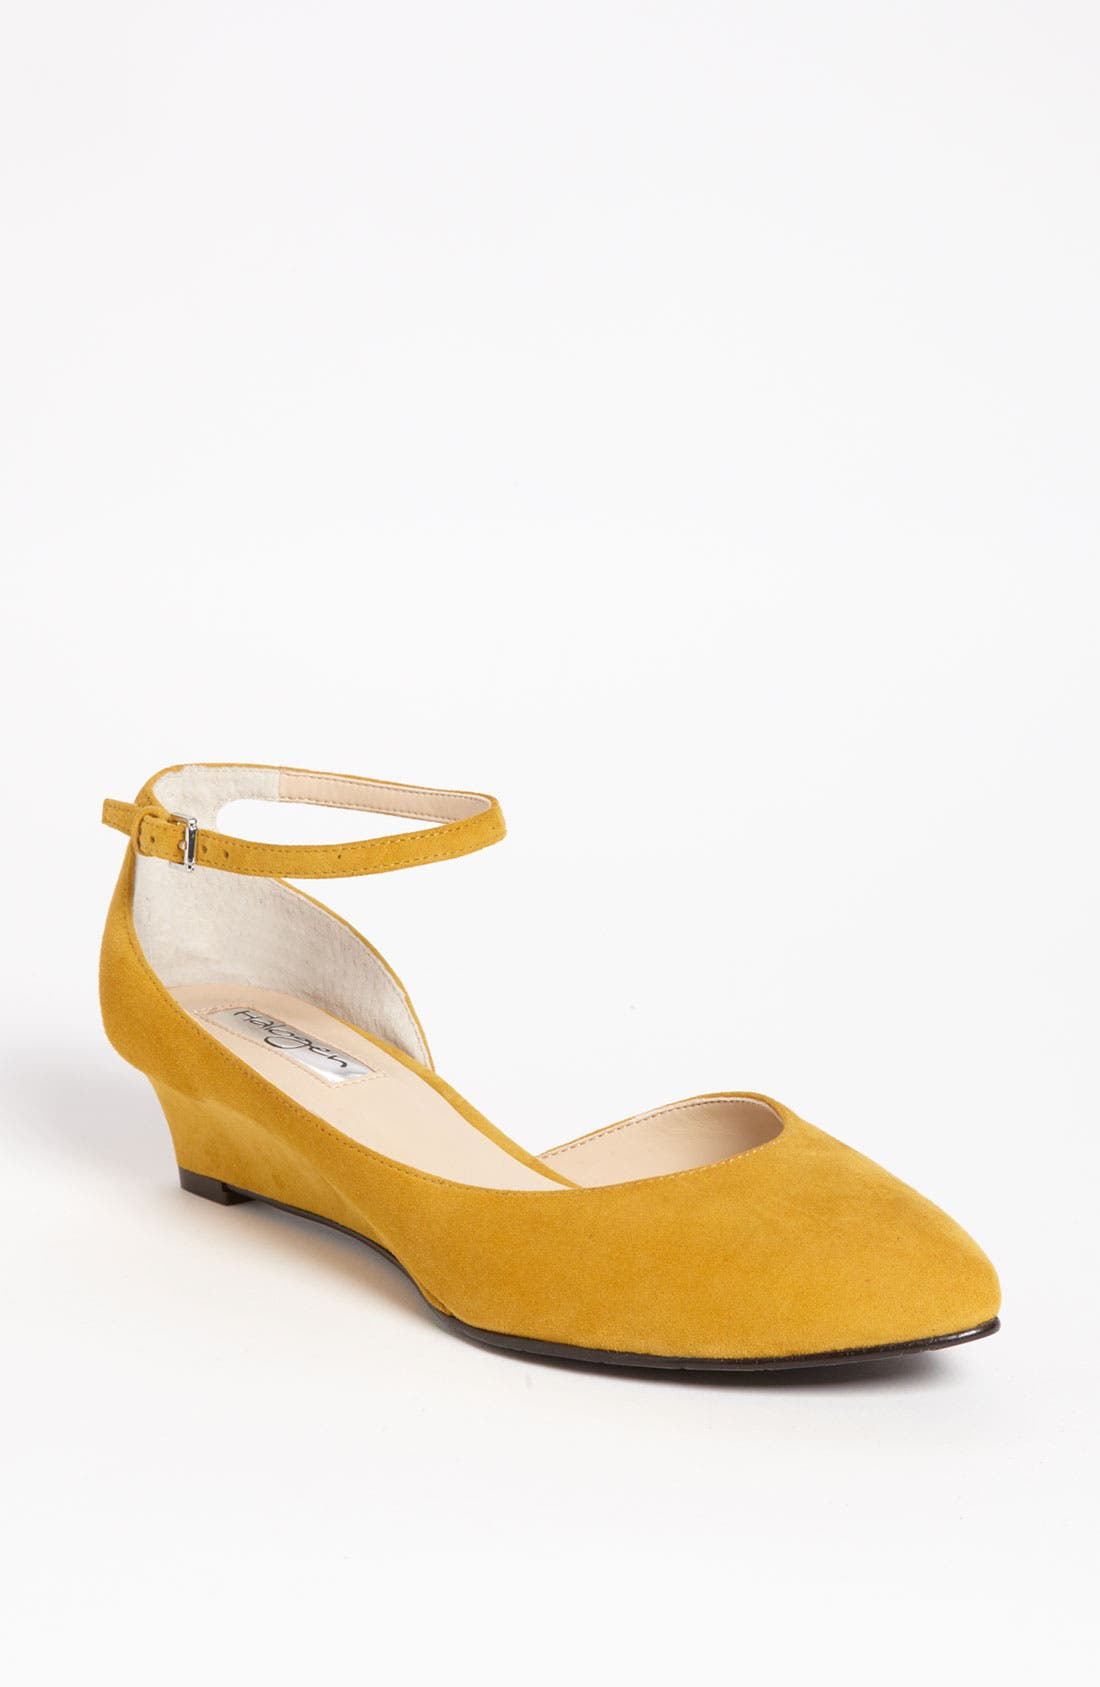 Alternate Image 1 Selected - HALOGEN BIANCA ANKLE STRAP LOW WEDGE